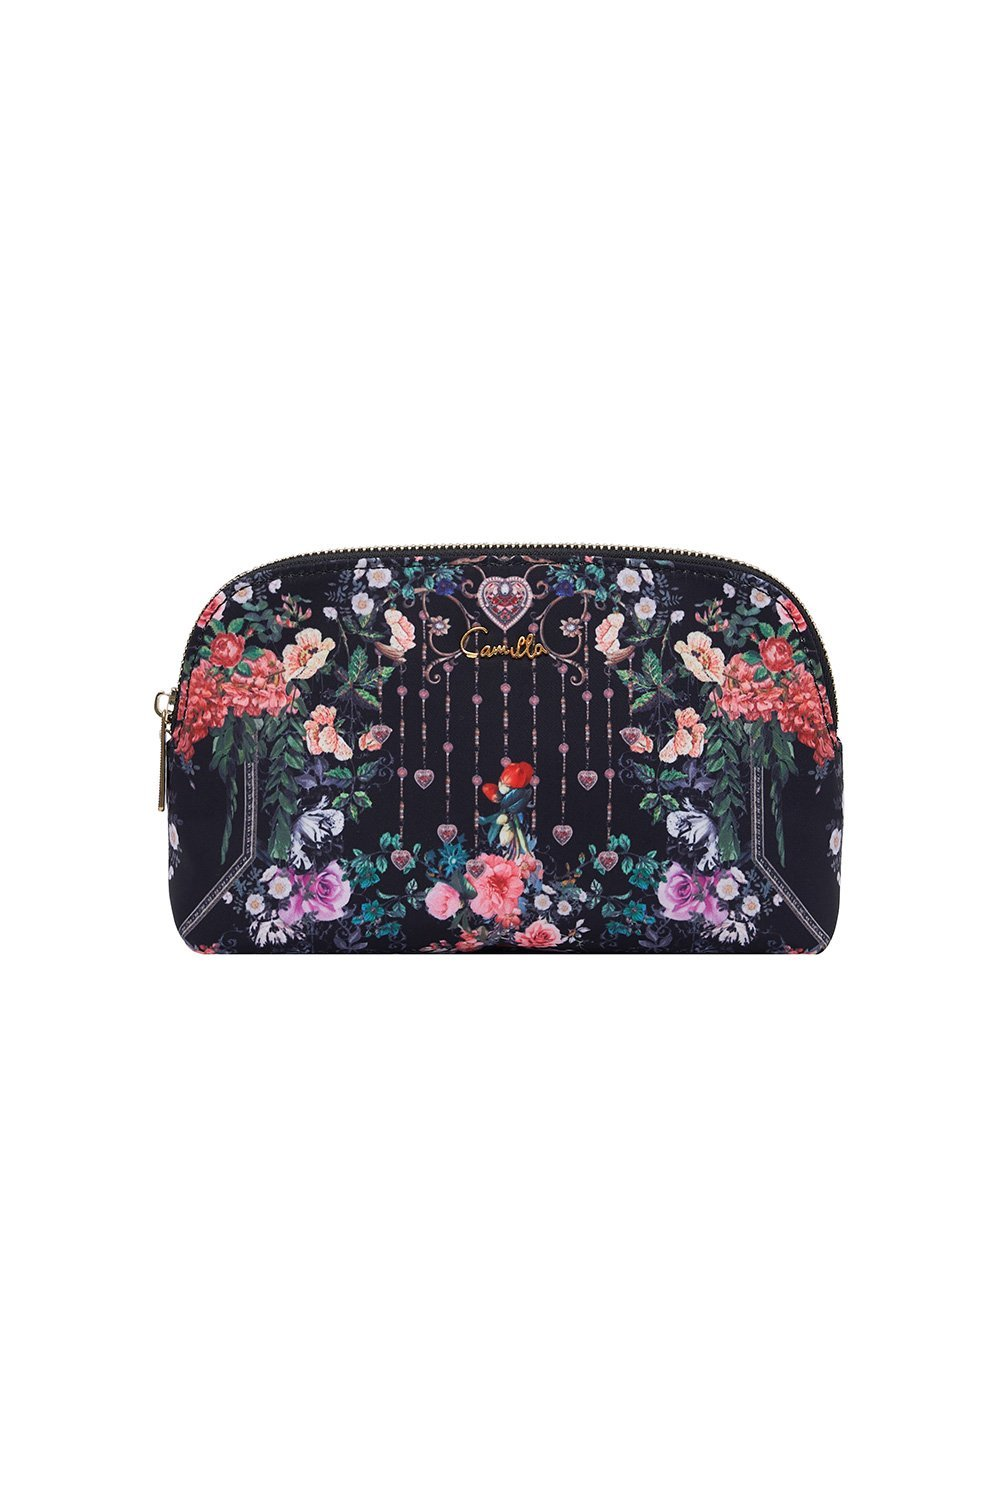 SMALL COSMETIC CASE MONTAGUES CAPULET